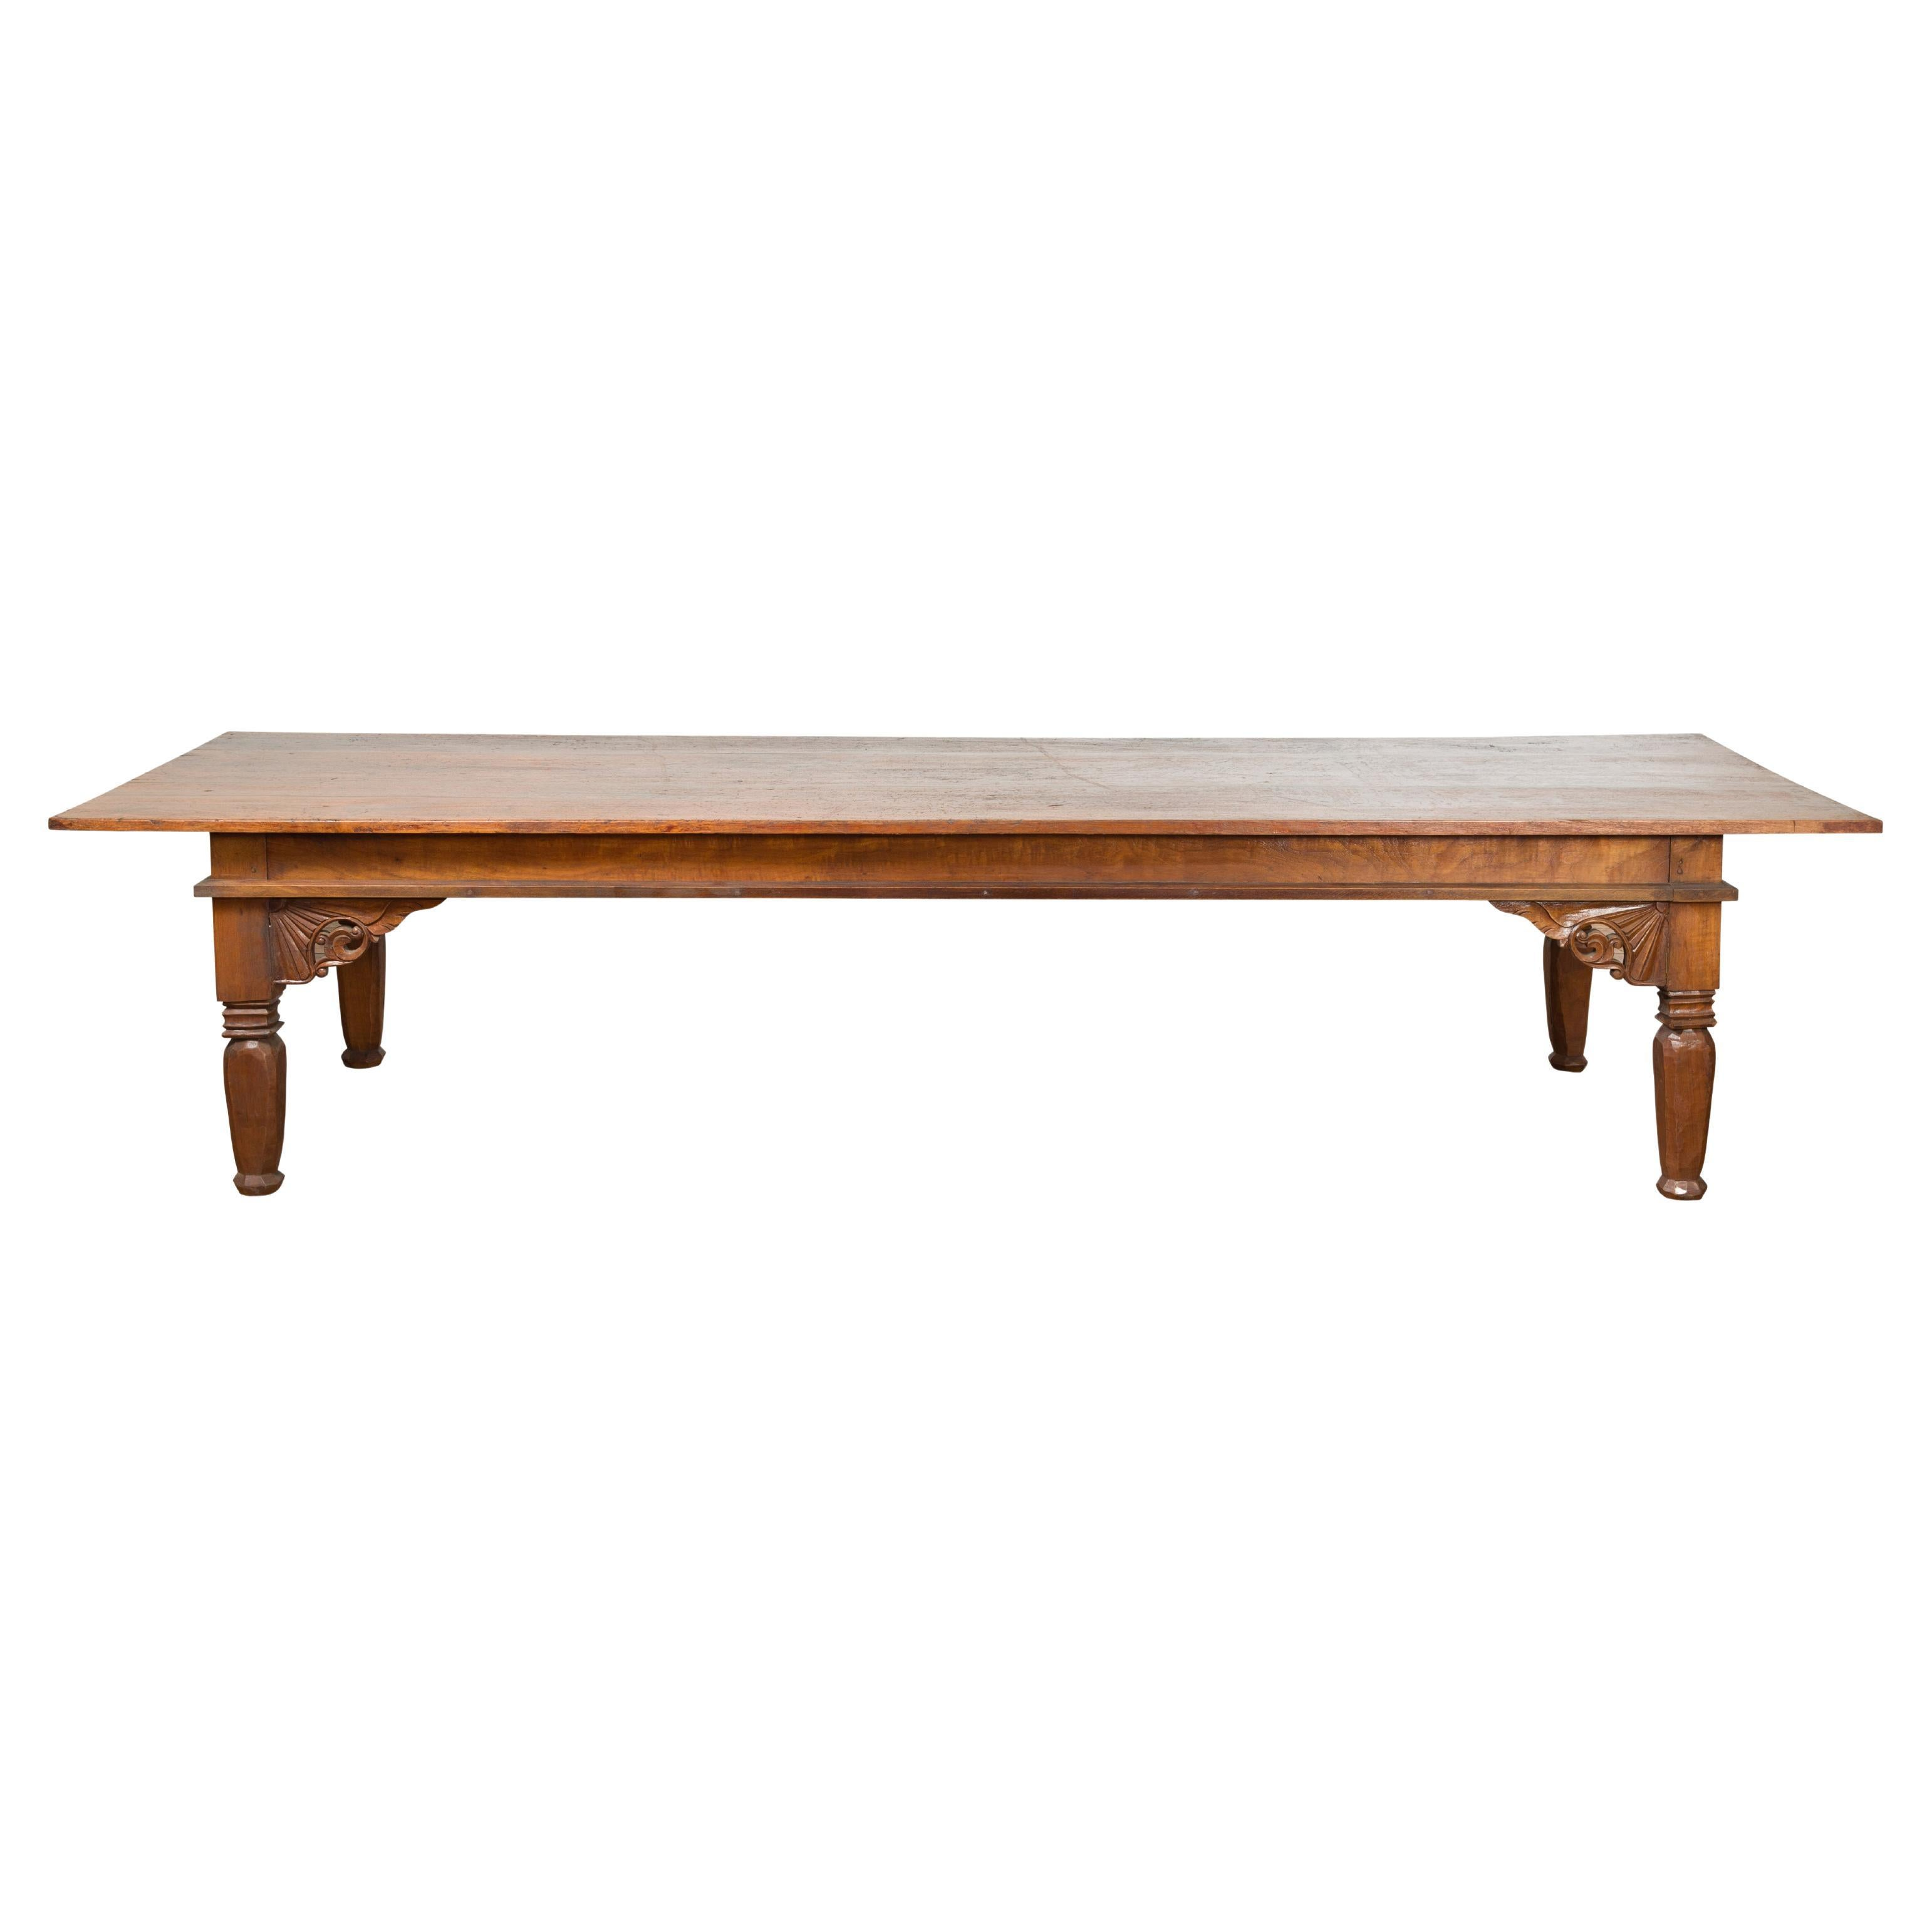 Oversized 19th Century Indonesian Madurese Coffee Table with Carved Spandrels